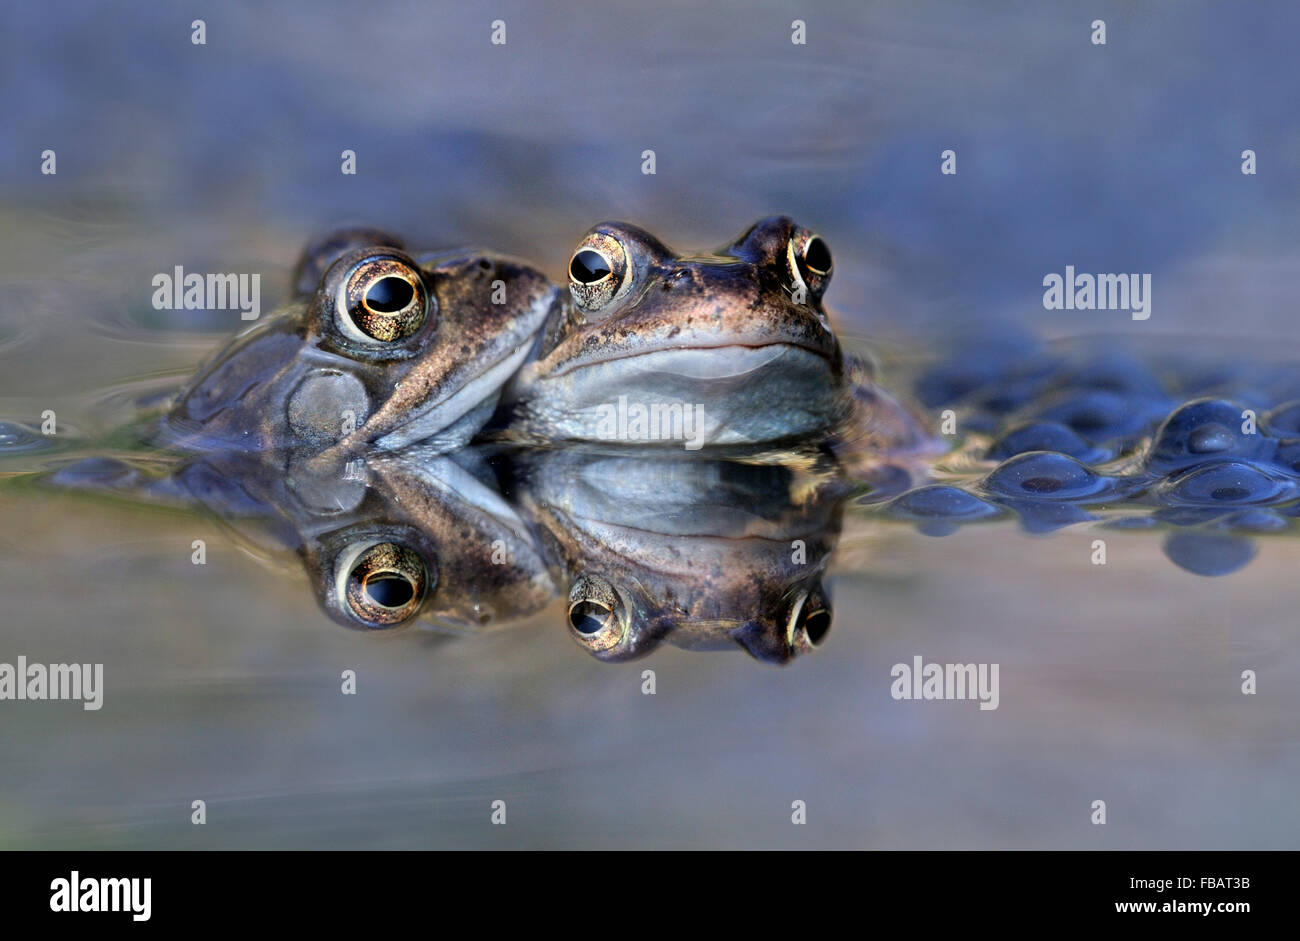 Adult common frog pair (Rana temporaria) in garden pond, surrounded by frogspawn, with reflection, Bentley, Suffolk, - Stock Image